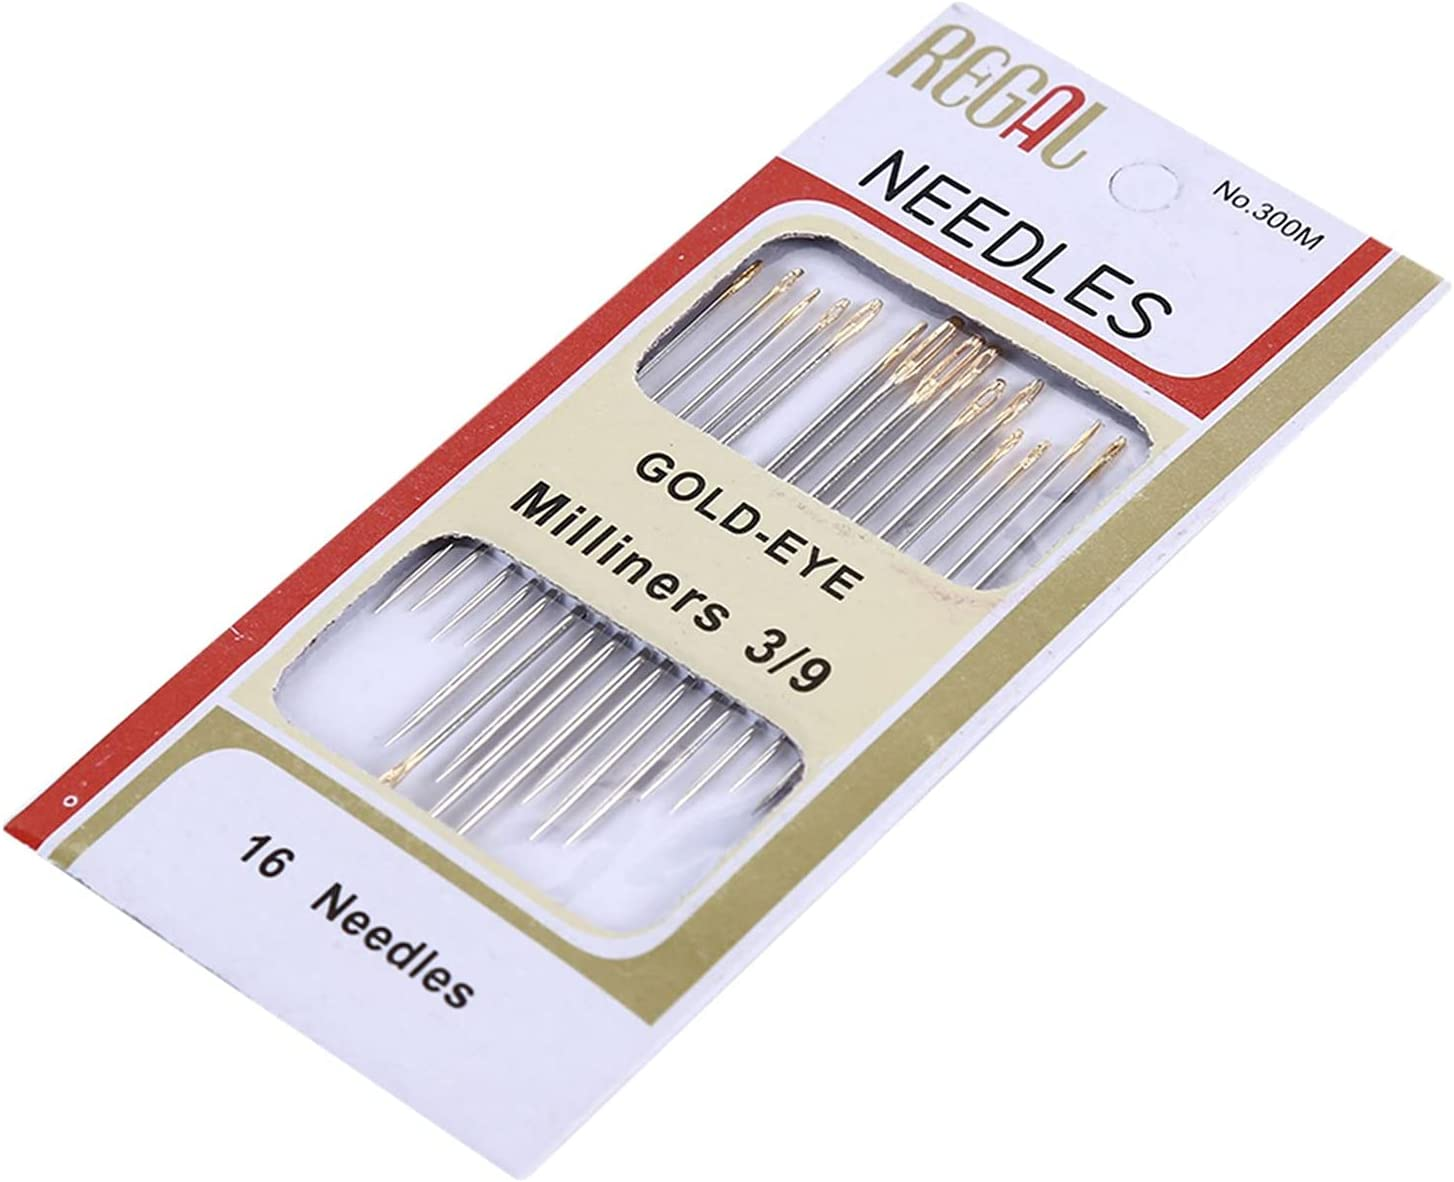 GOMYIE 16Pcs Practical Large Eye Stitchi We OFFer at cheap Louisville-Jefferson County Mall prices Sewing Hand for Needles